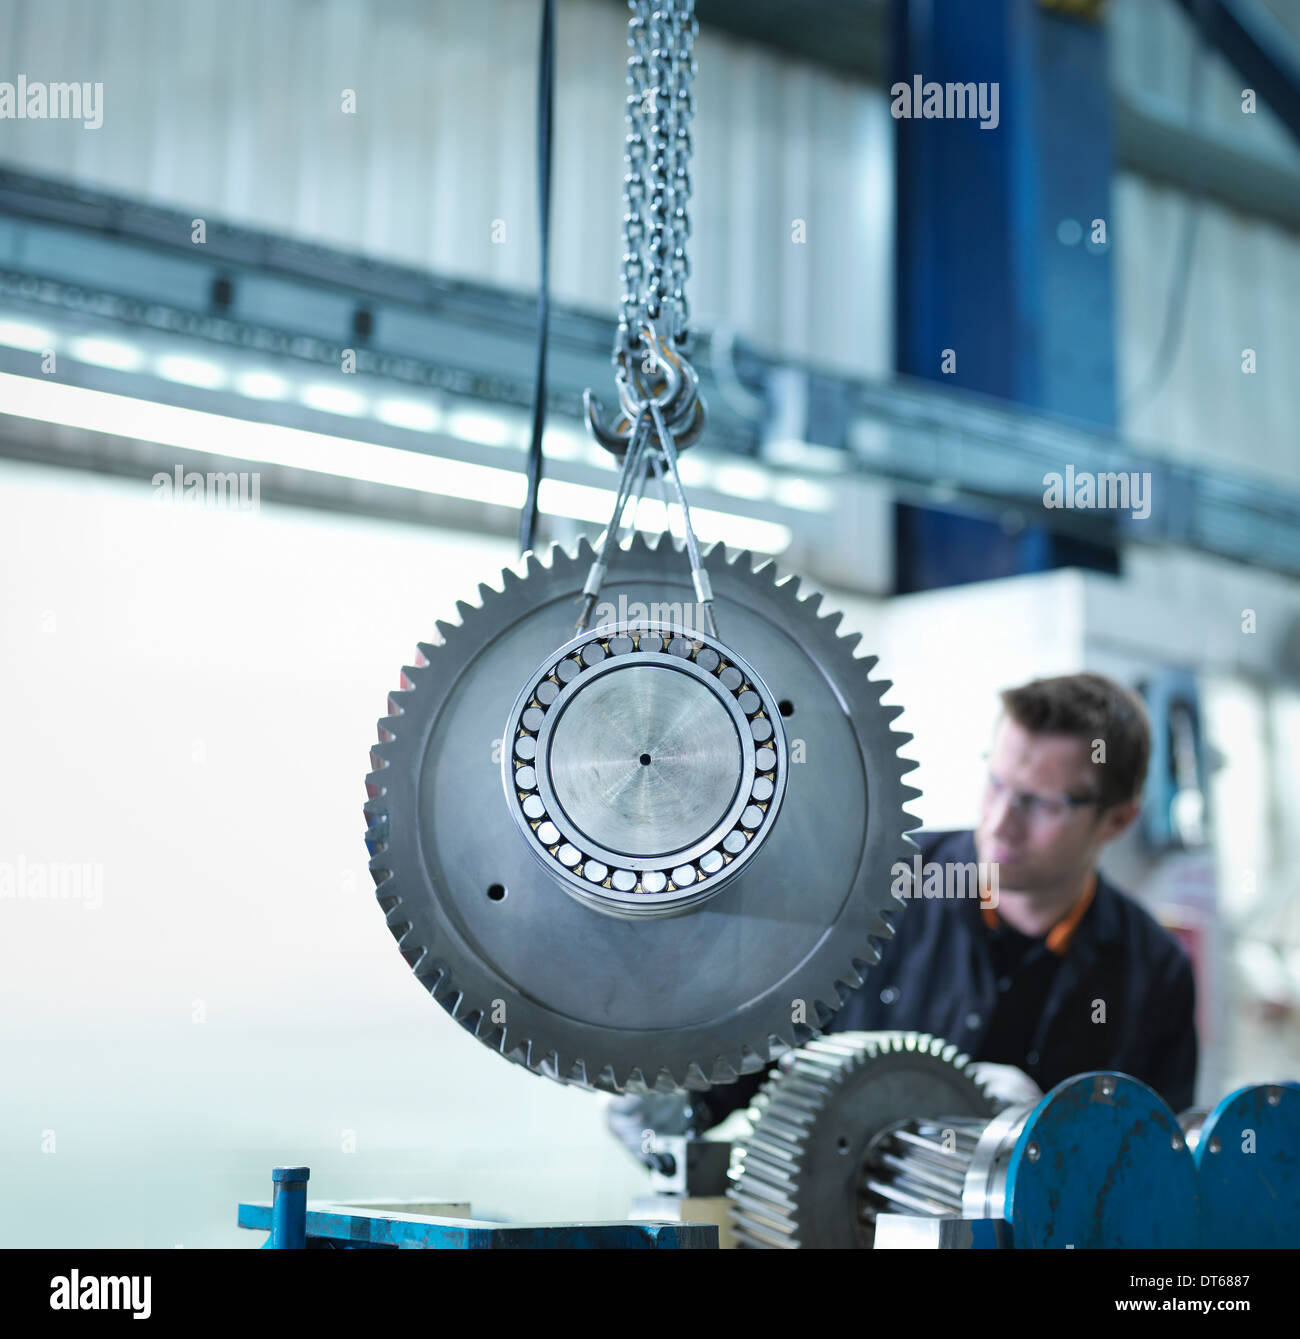 Gear for industrial gearbox in engineering factory - Stock Image